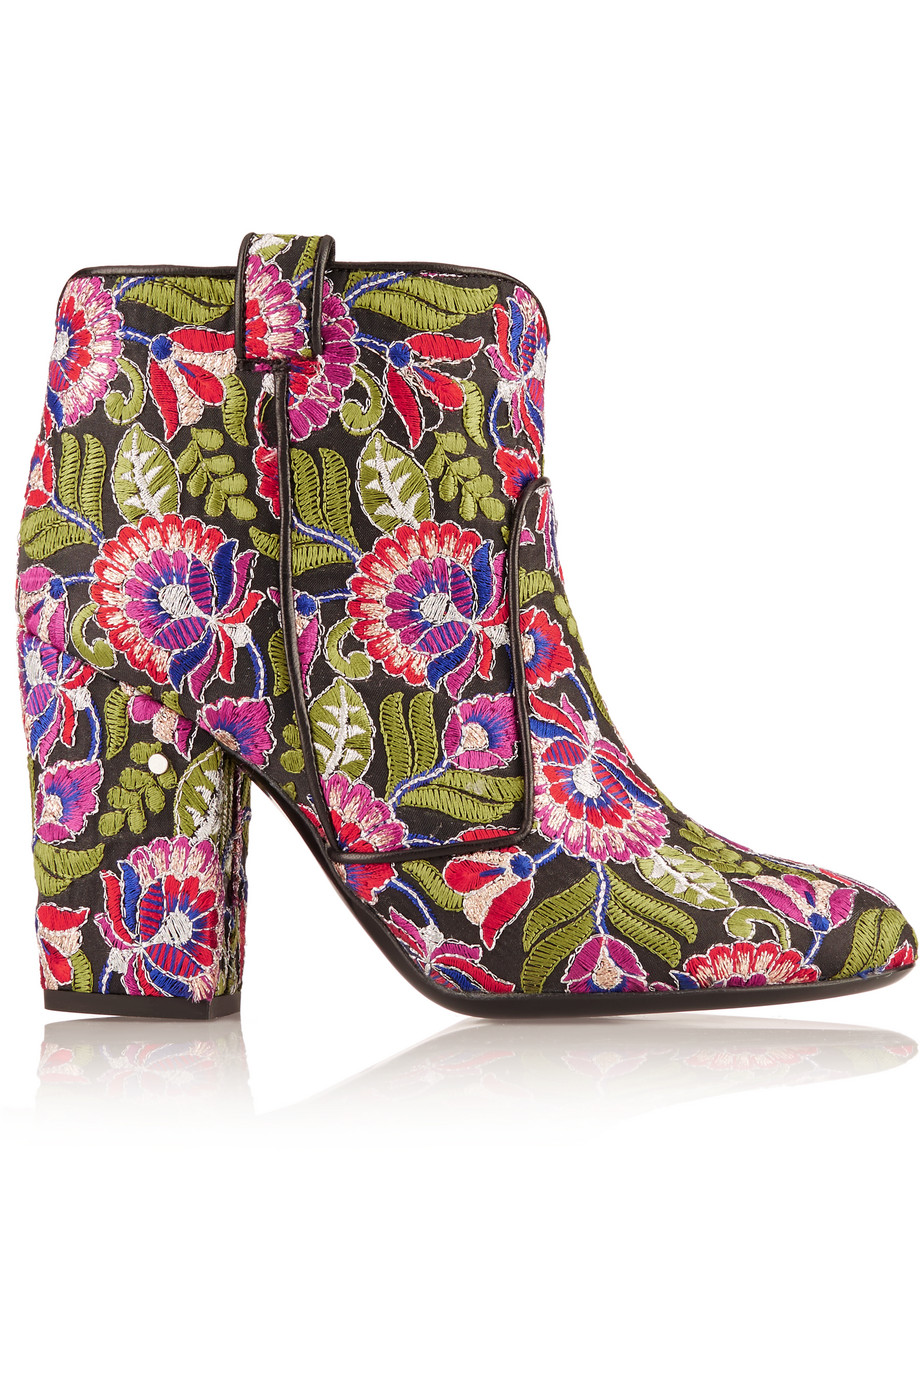 Laurence Dacade Pete Embroidered Canvas Ankle Boots, Pink/Green, Women's US Size: 7, Size: 37.5